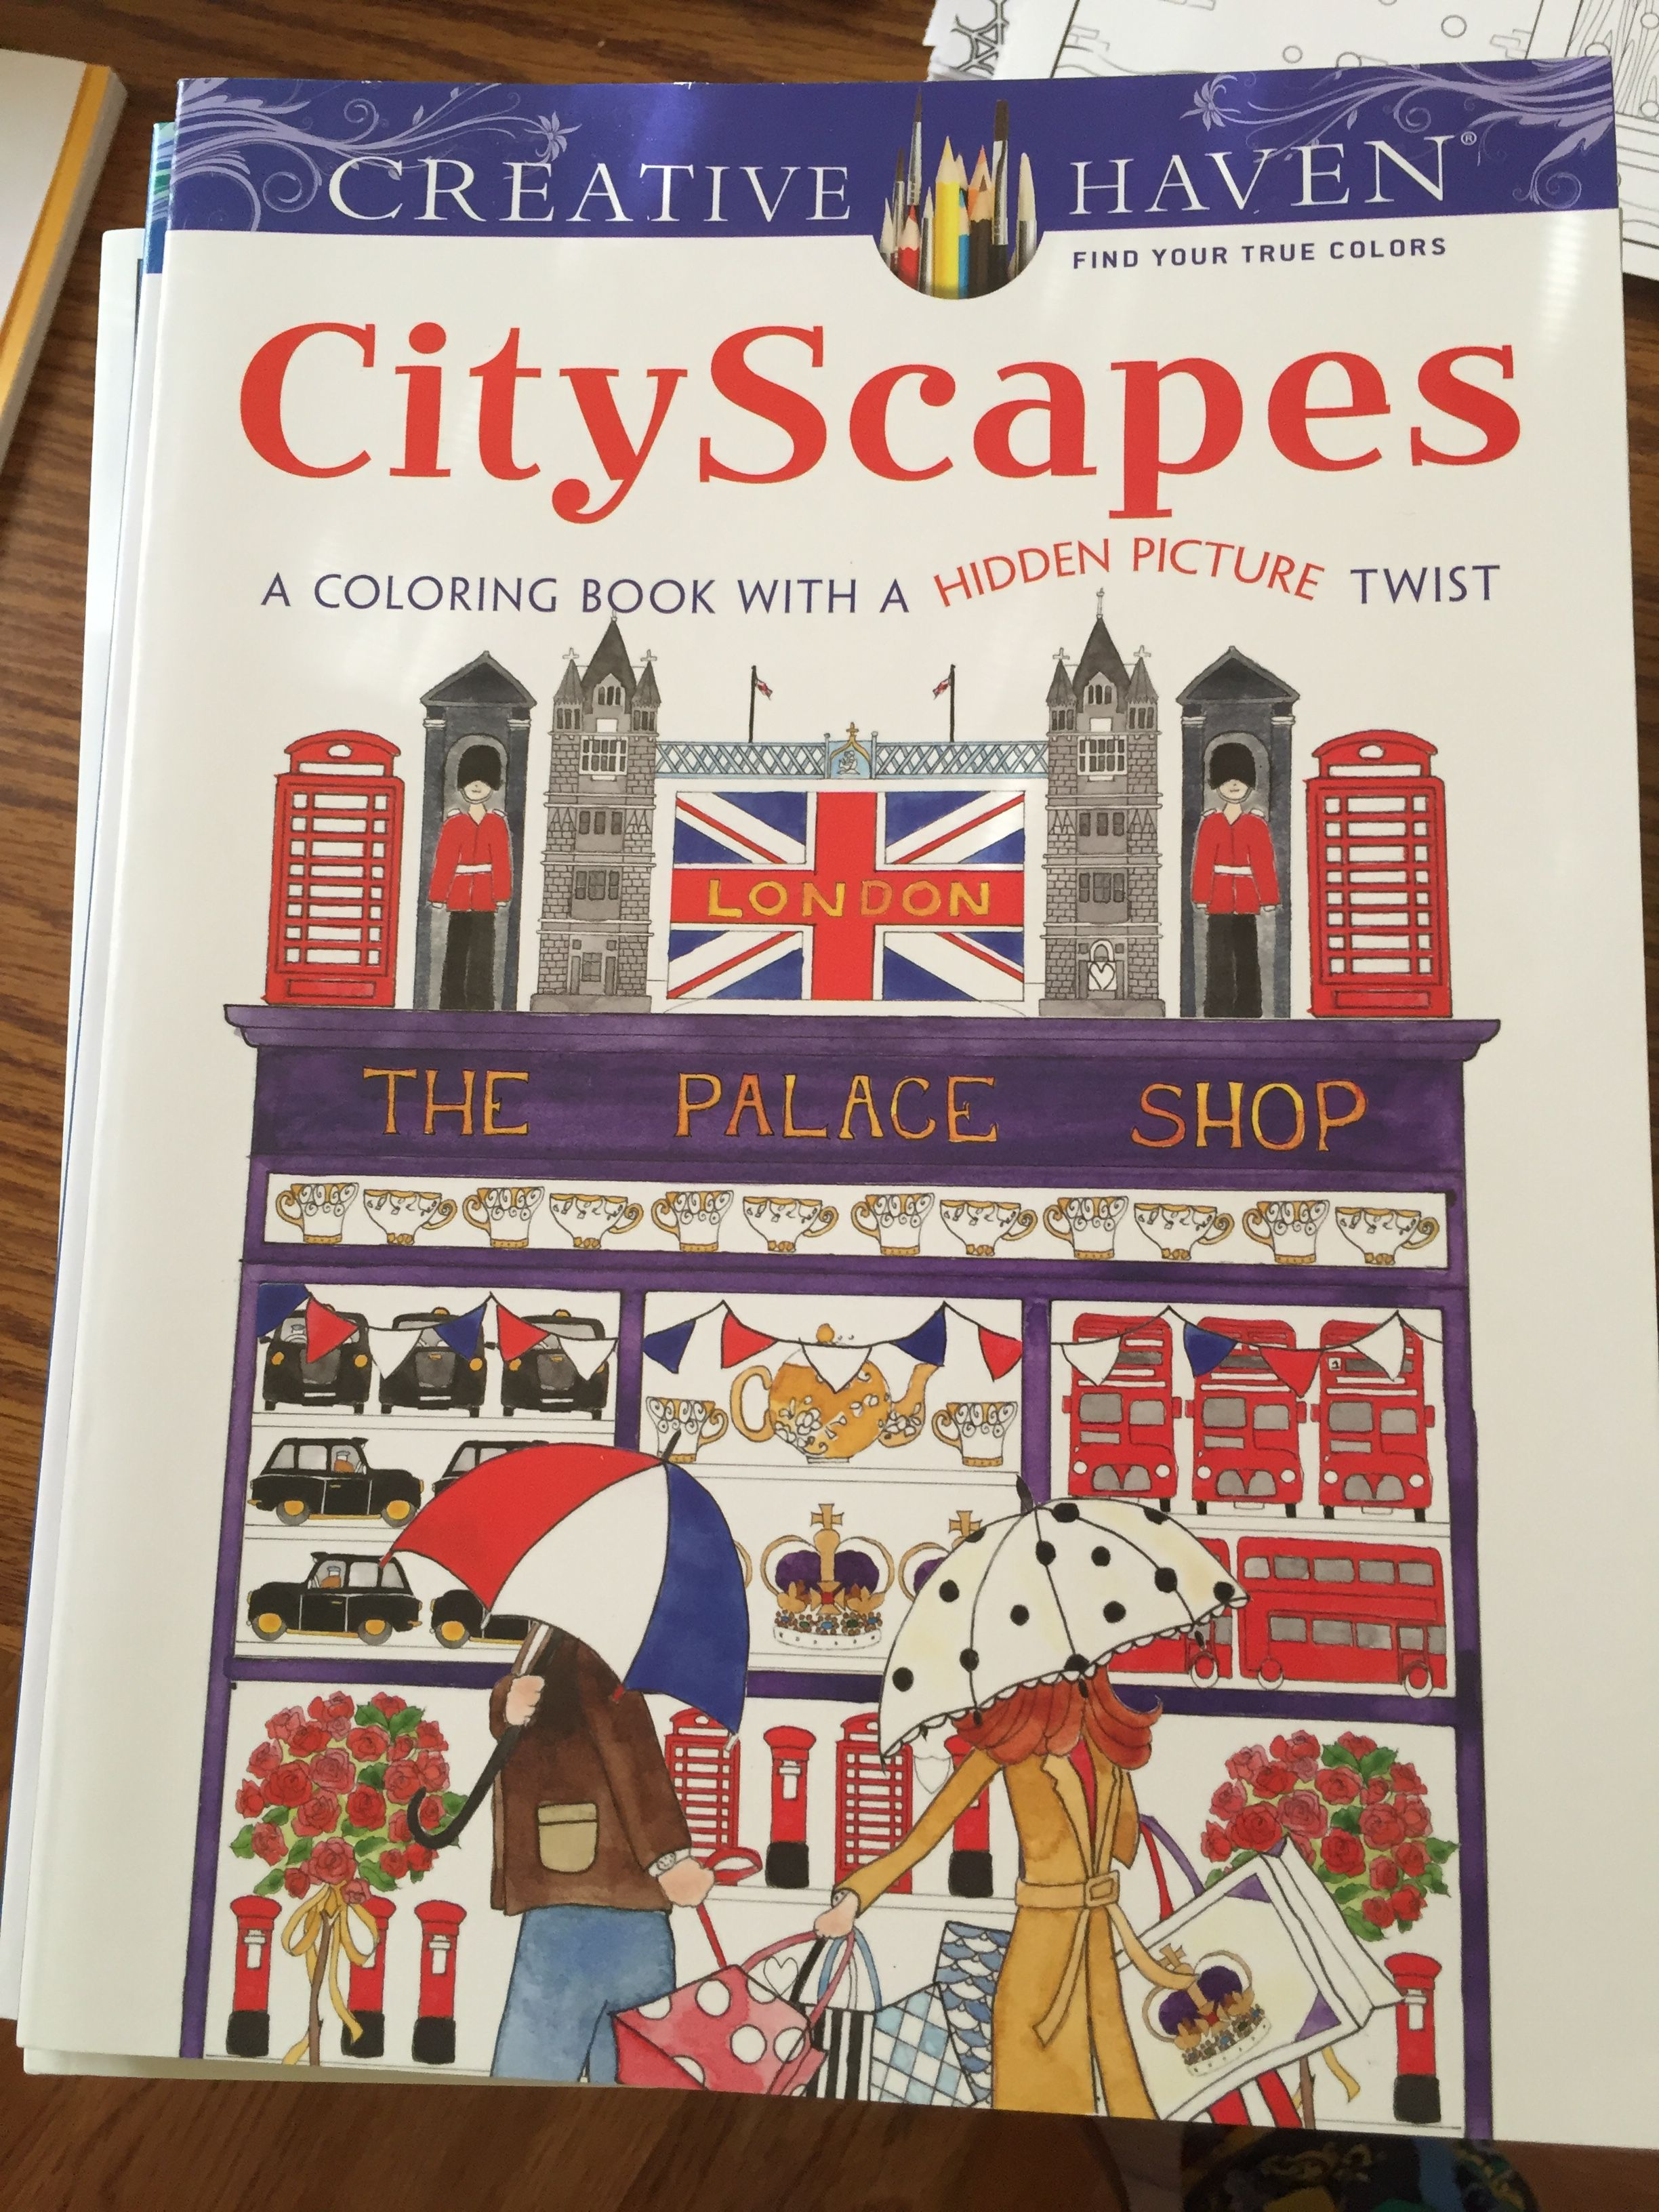 Pin By Heather Marie Wall On Coloring Books And Books I Own Coloring Books Cityscape Book Art